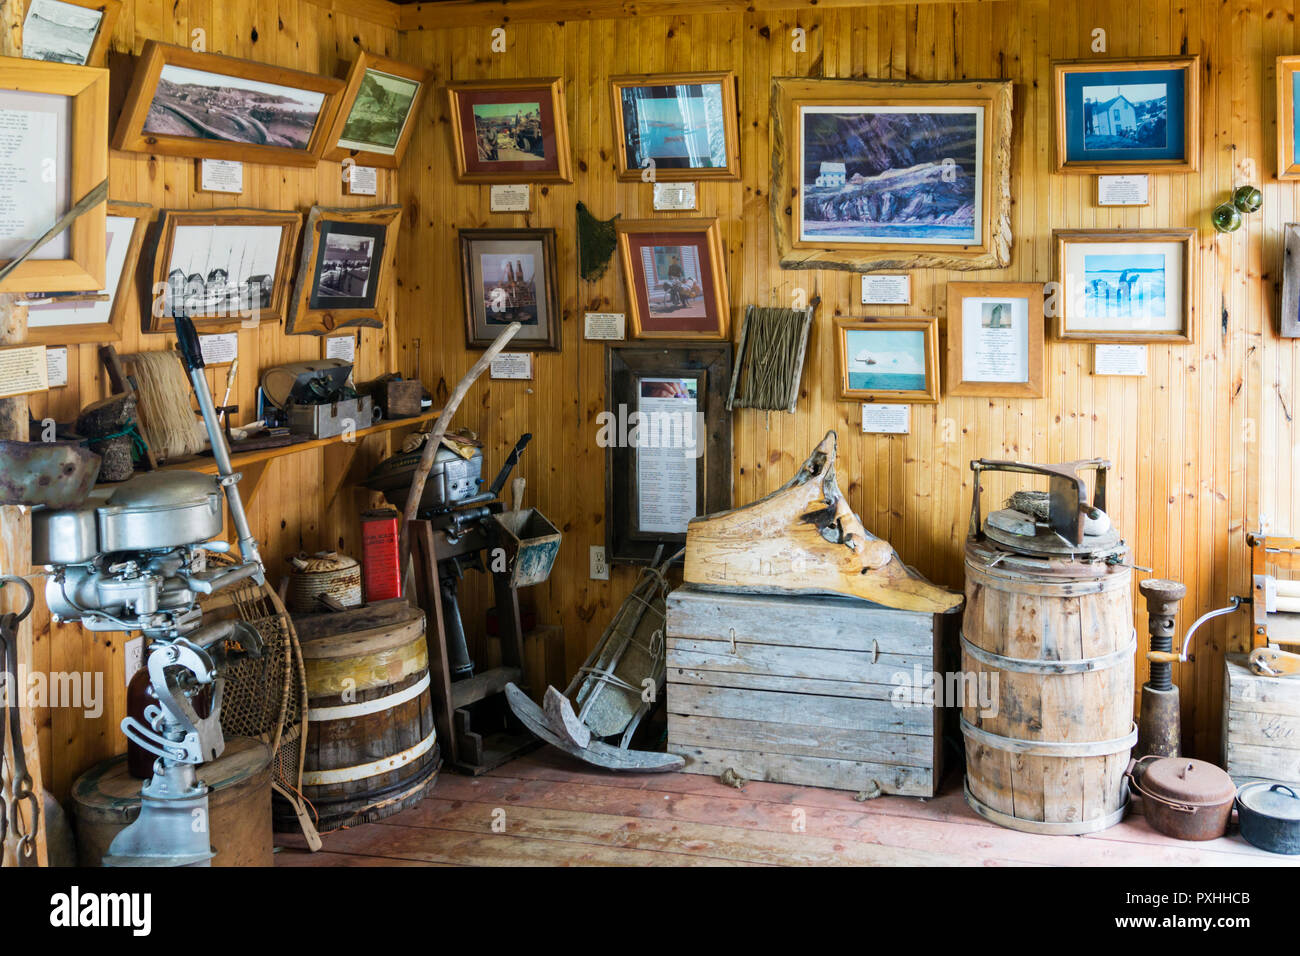 The Prime Berth fishery & heritage centre, near Twillingate, Newfoundland. - Stock Image